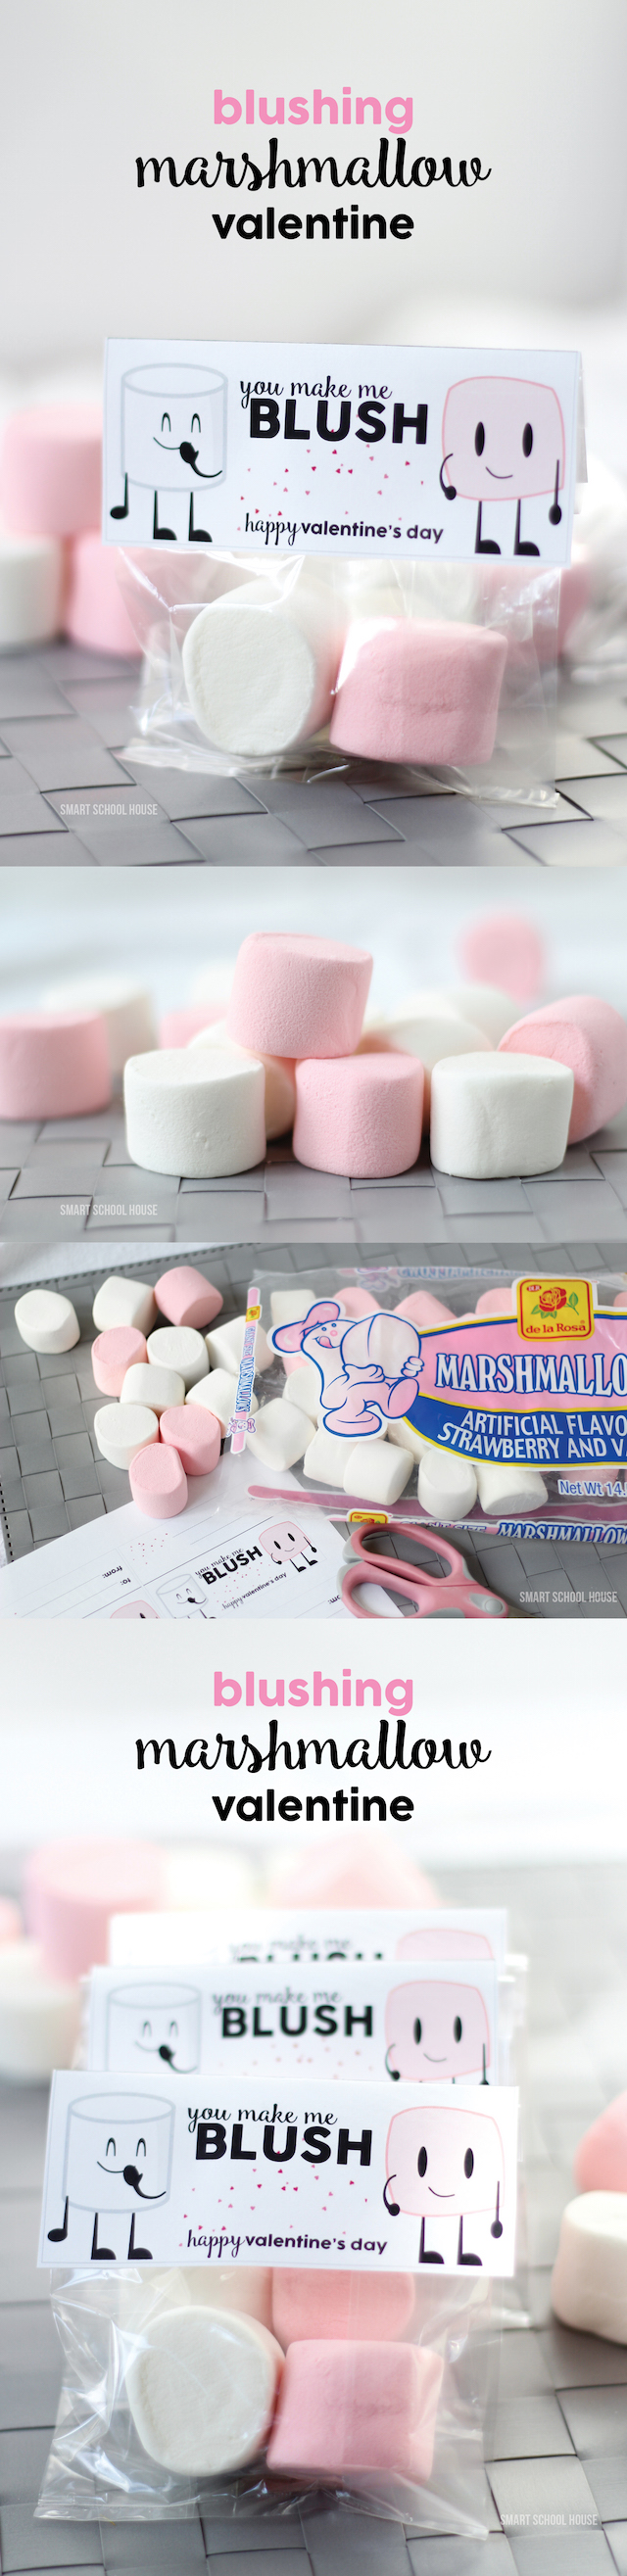 Blushing Marshmallow Valentine - an easy, inexpensive, and cute DIY Valentine idea!